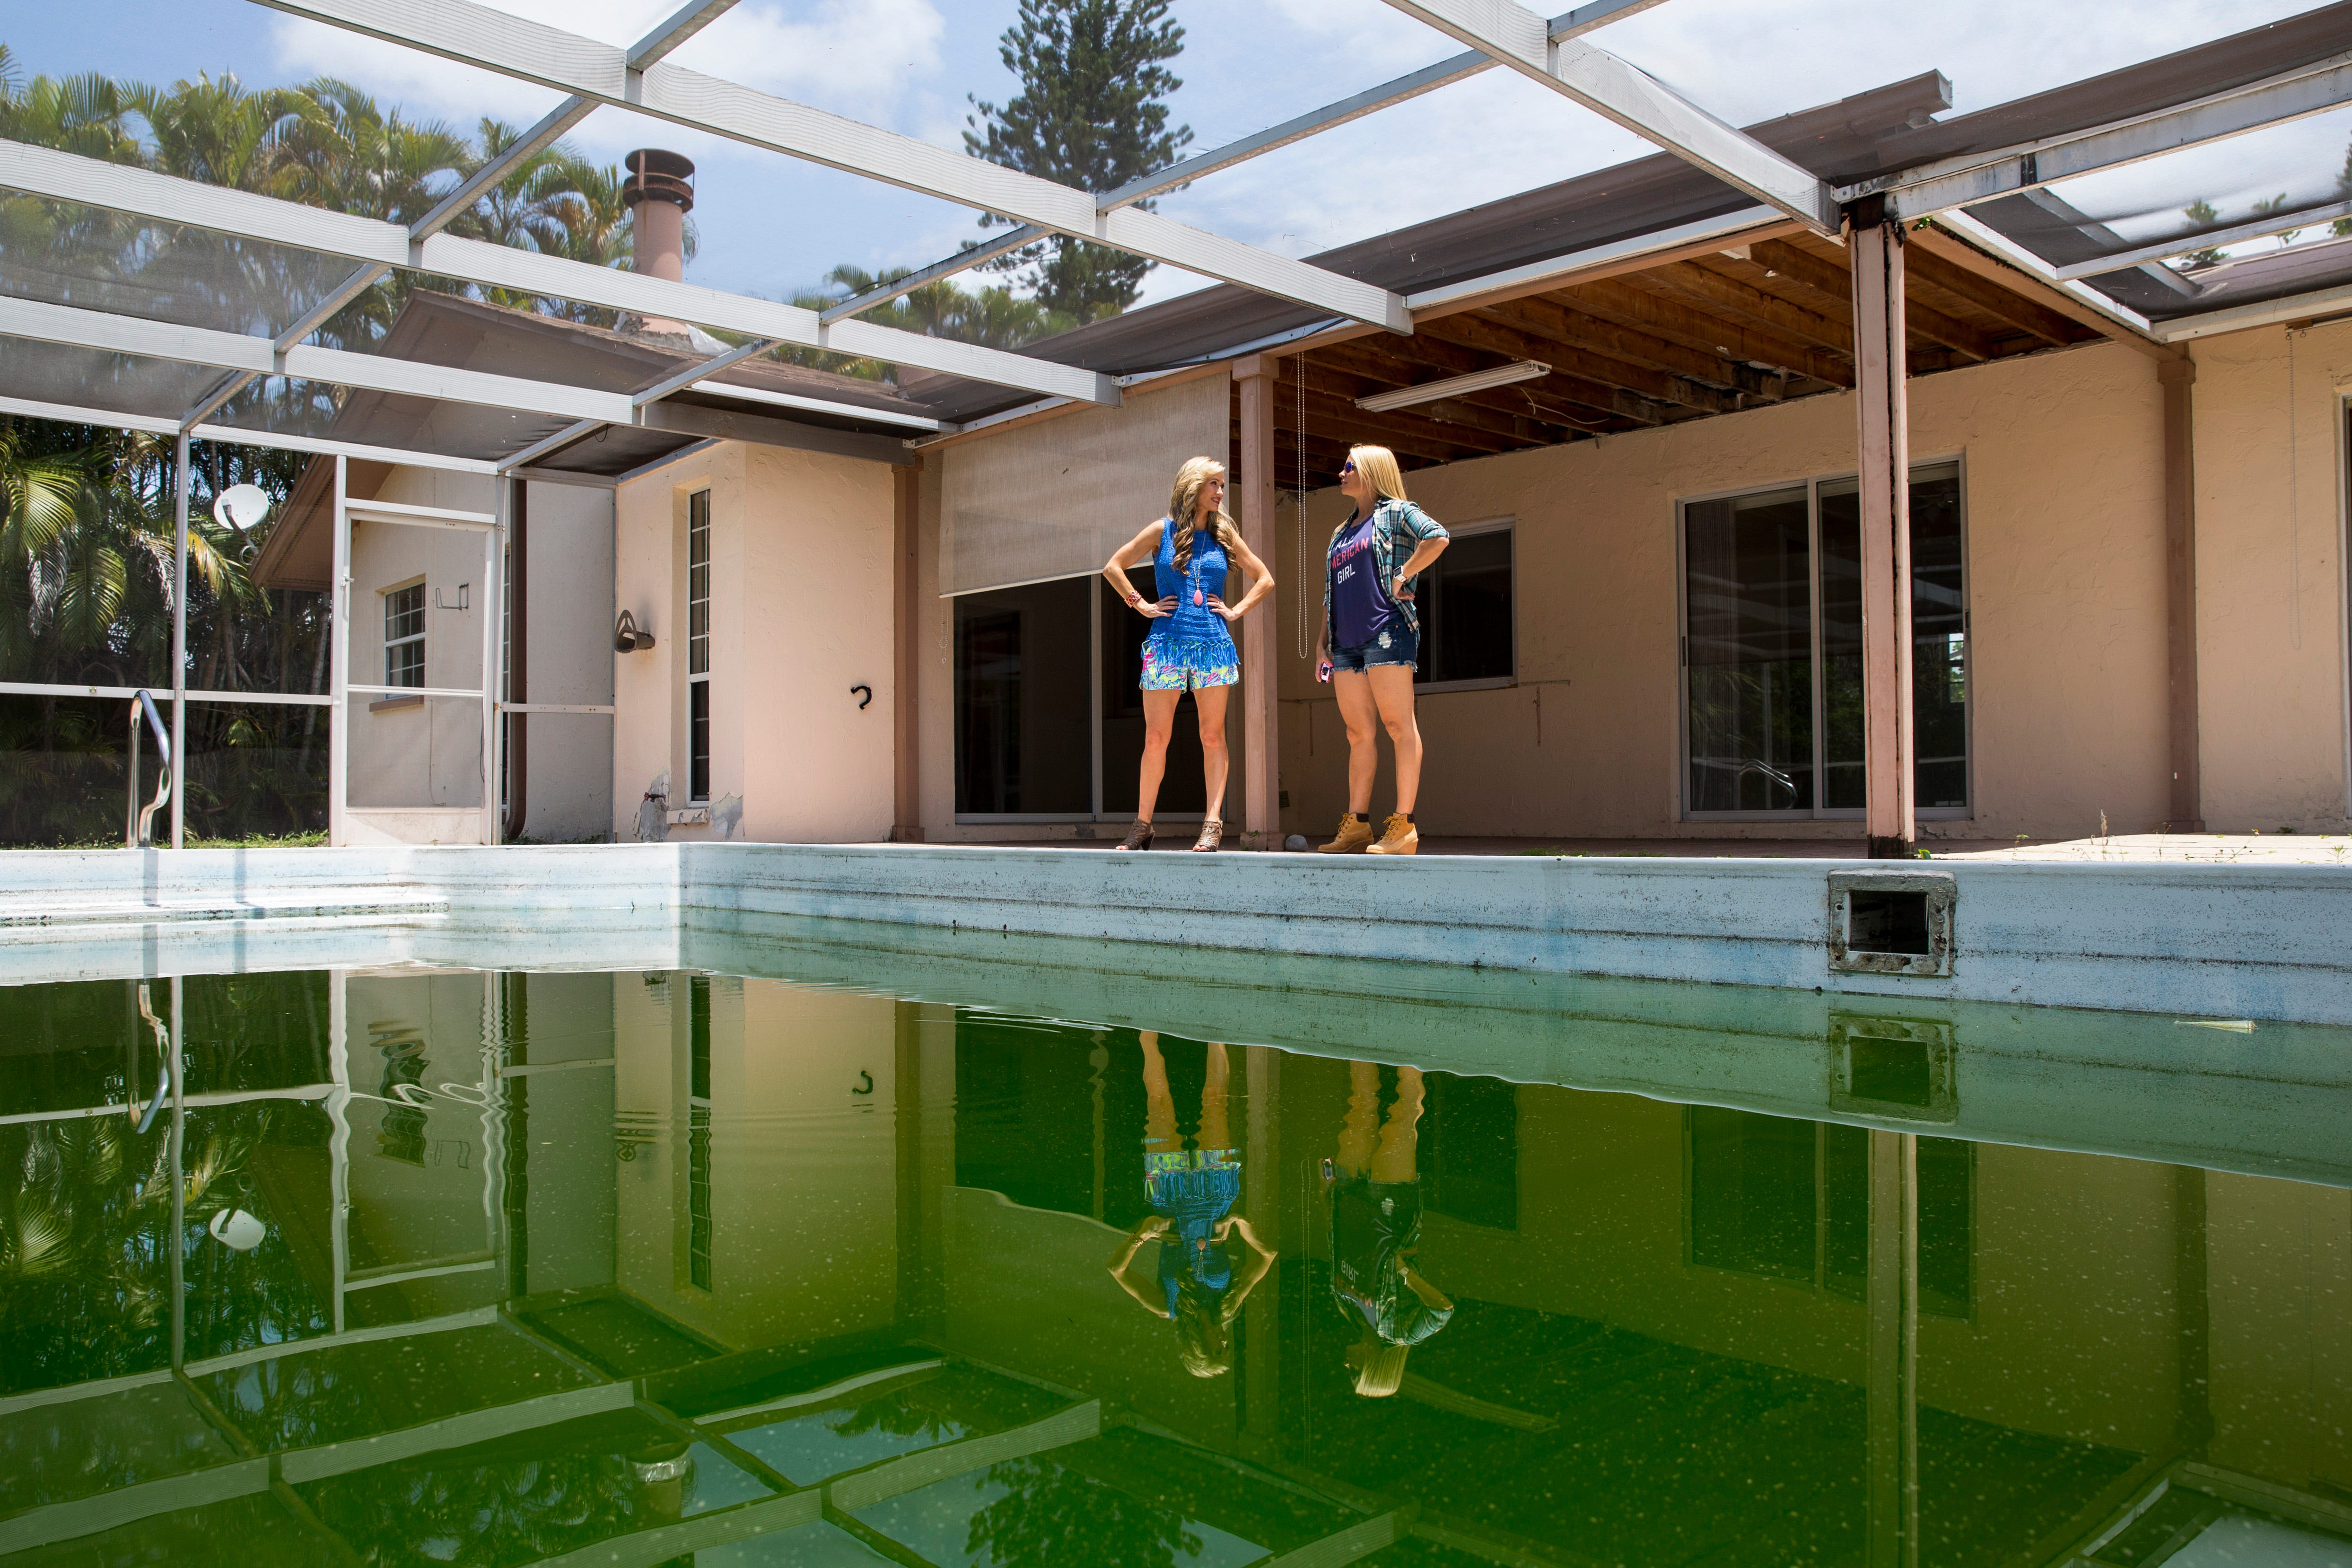 2 women see potential in flawed houses in Naples area fix flip them